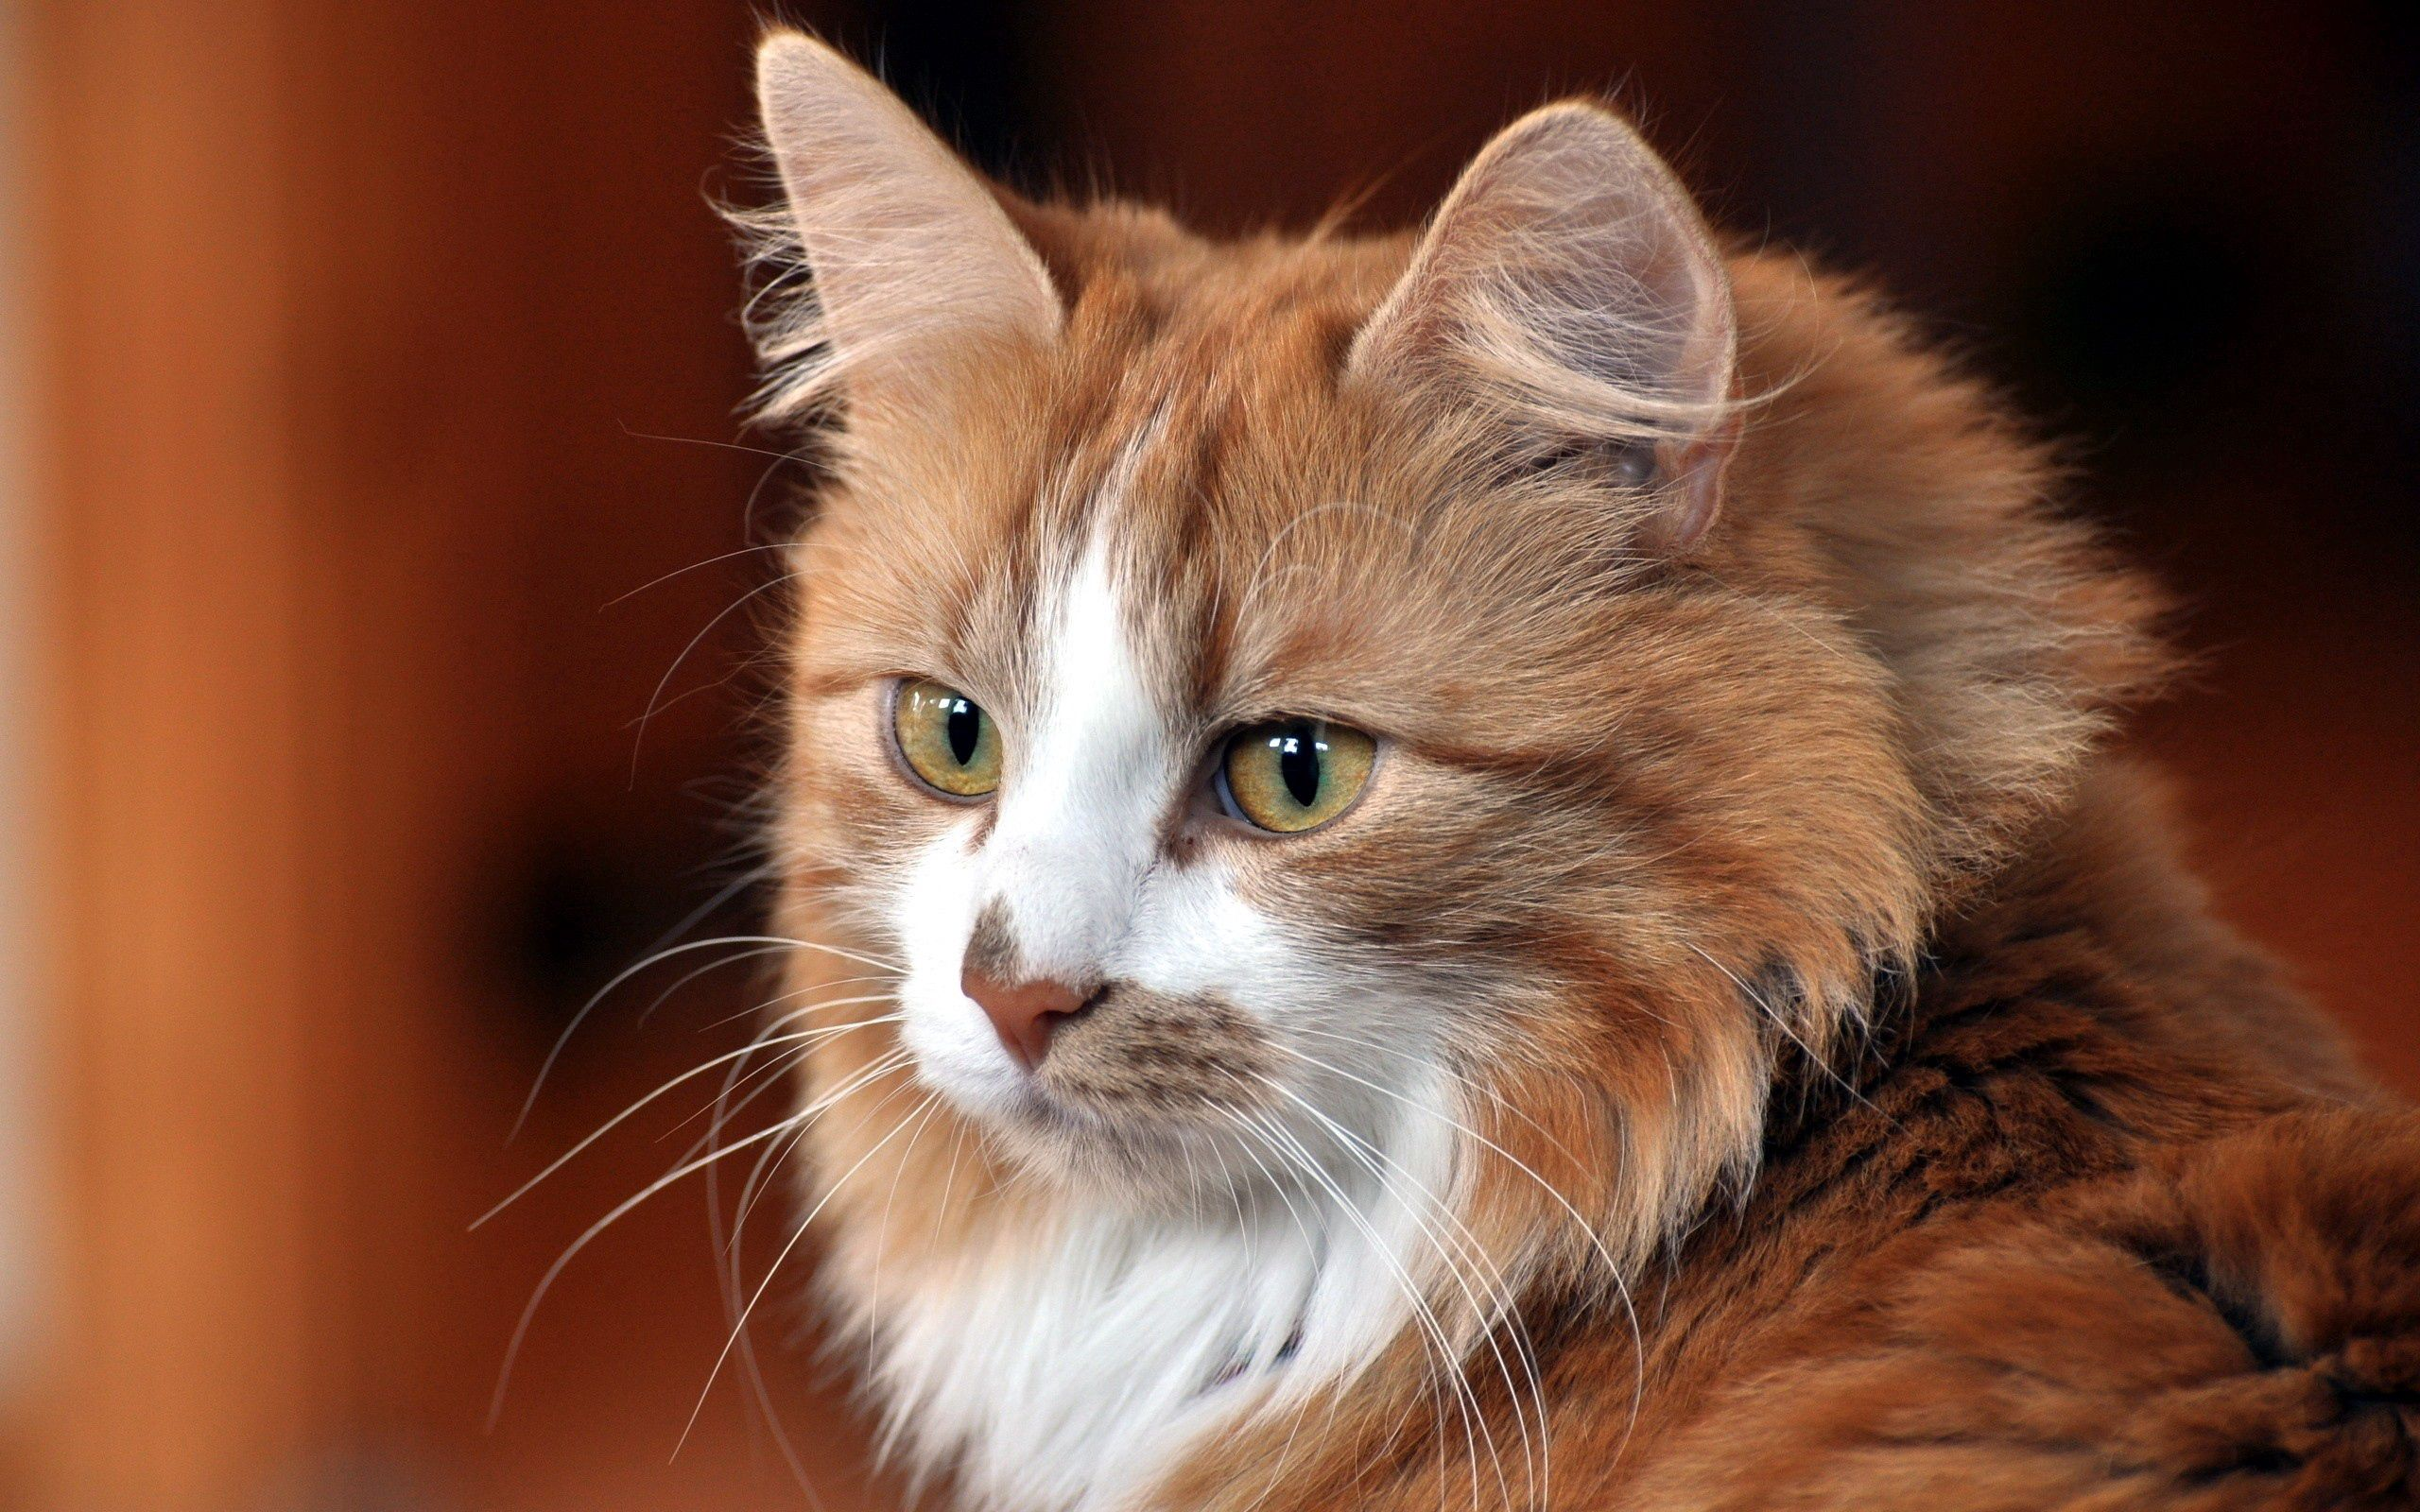 107906 Screensavers and Wallpapers Cat for phone. Download Animals, Cat, Muzzle, Fluffy Cat, Cool Cat, Funny Cat, Cute Cat pictures for free